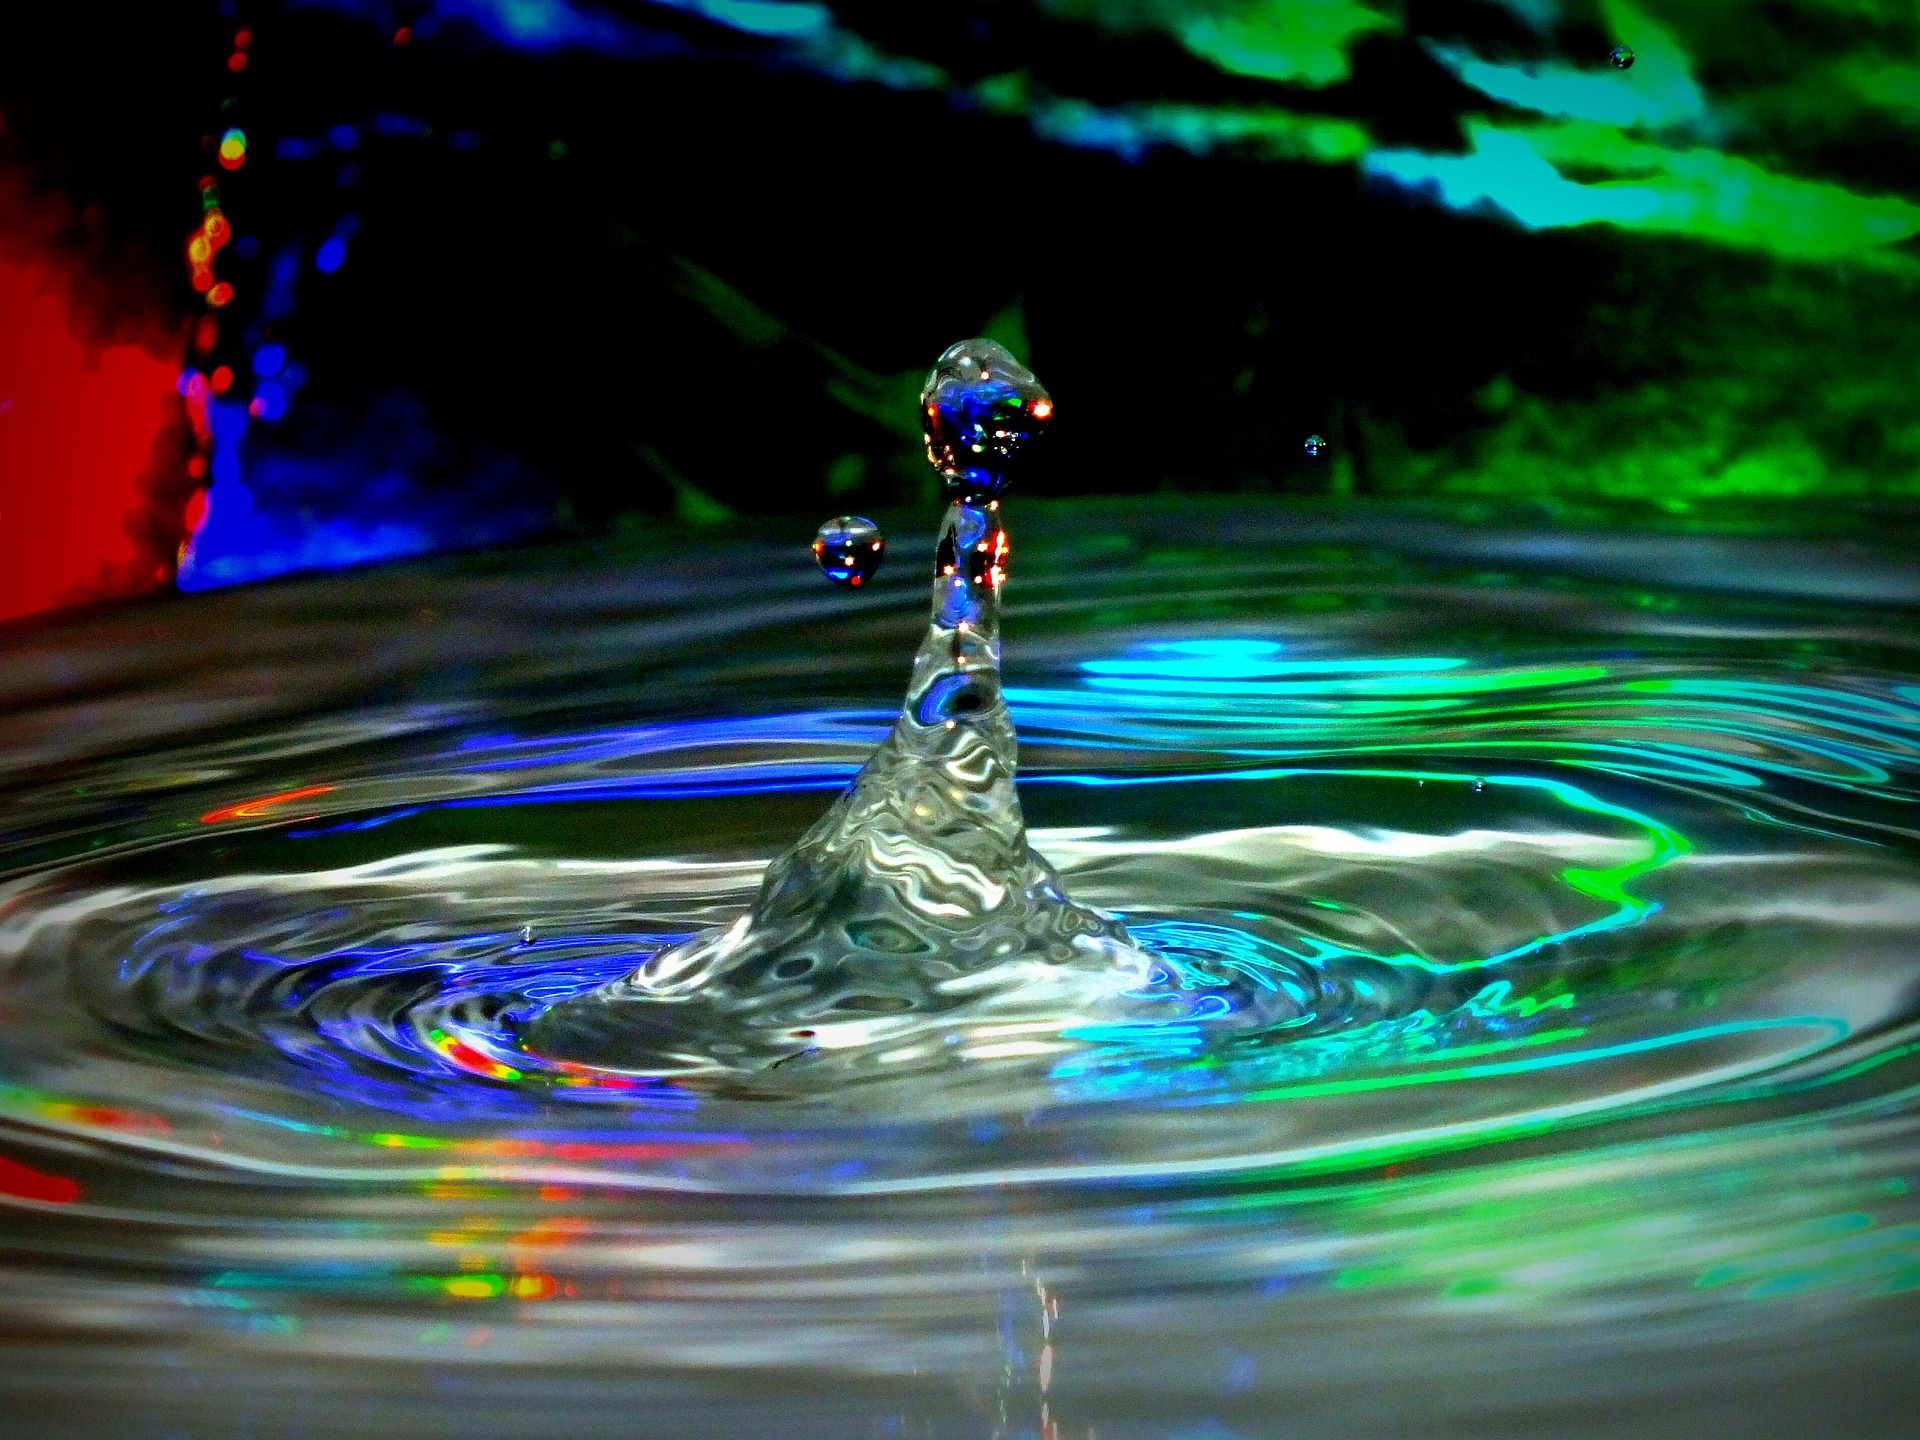 water-953257_1920